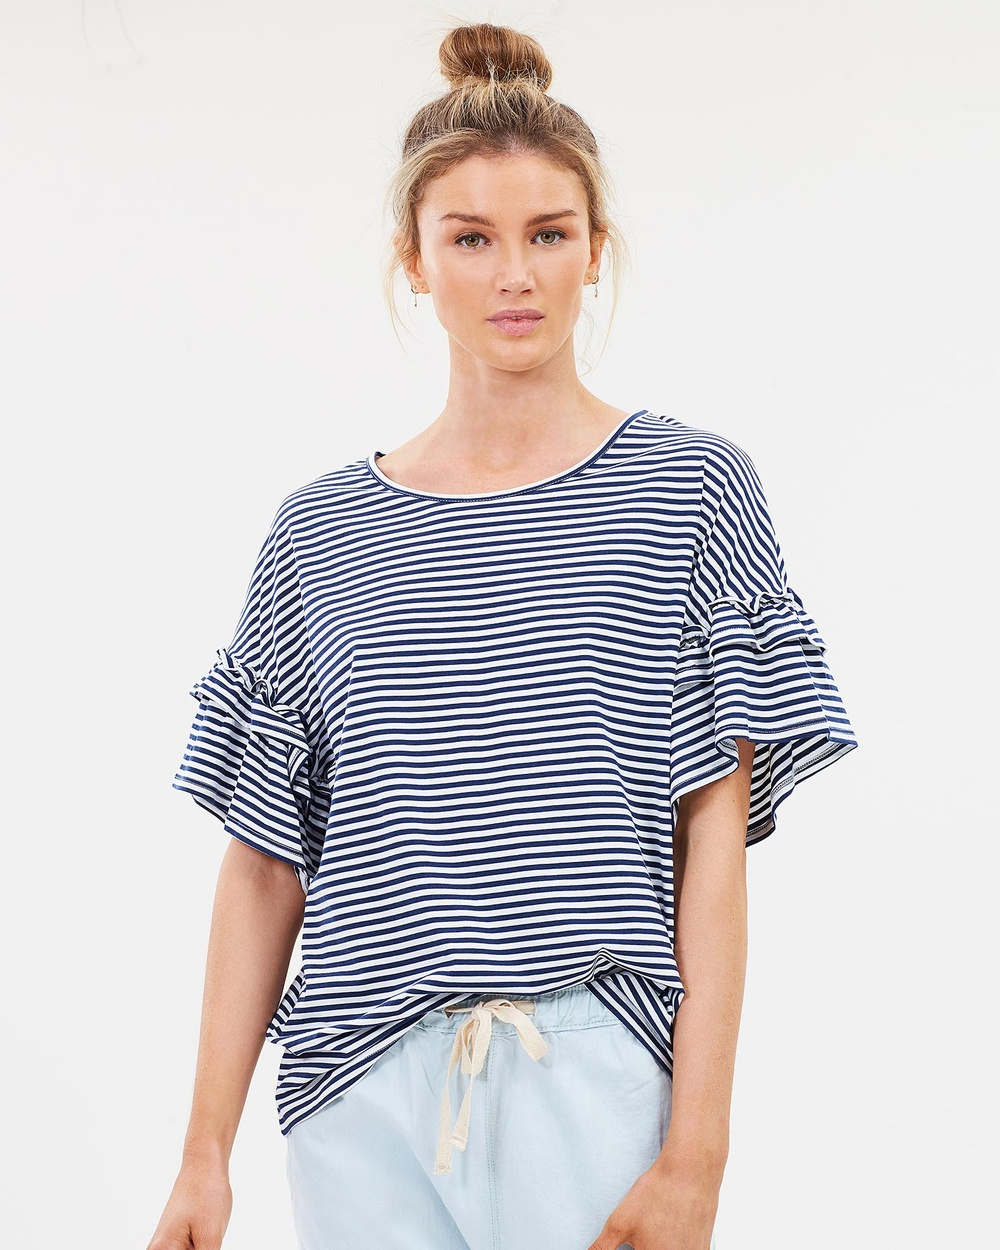 Lincoln St The Frill Cuff Tee Tops Navy Stripe The Frill Cuff Tee